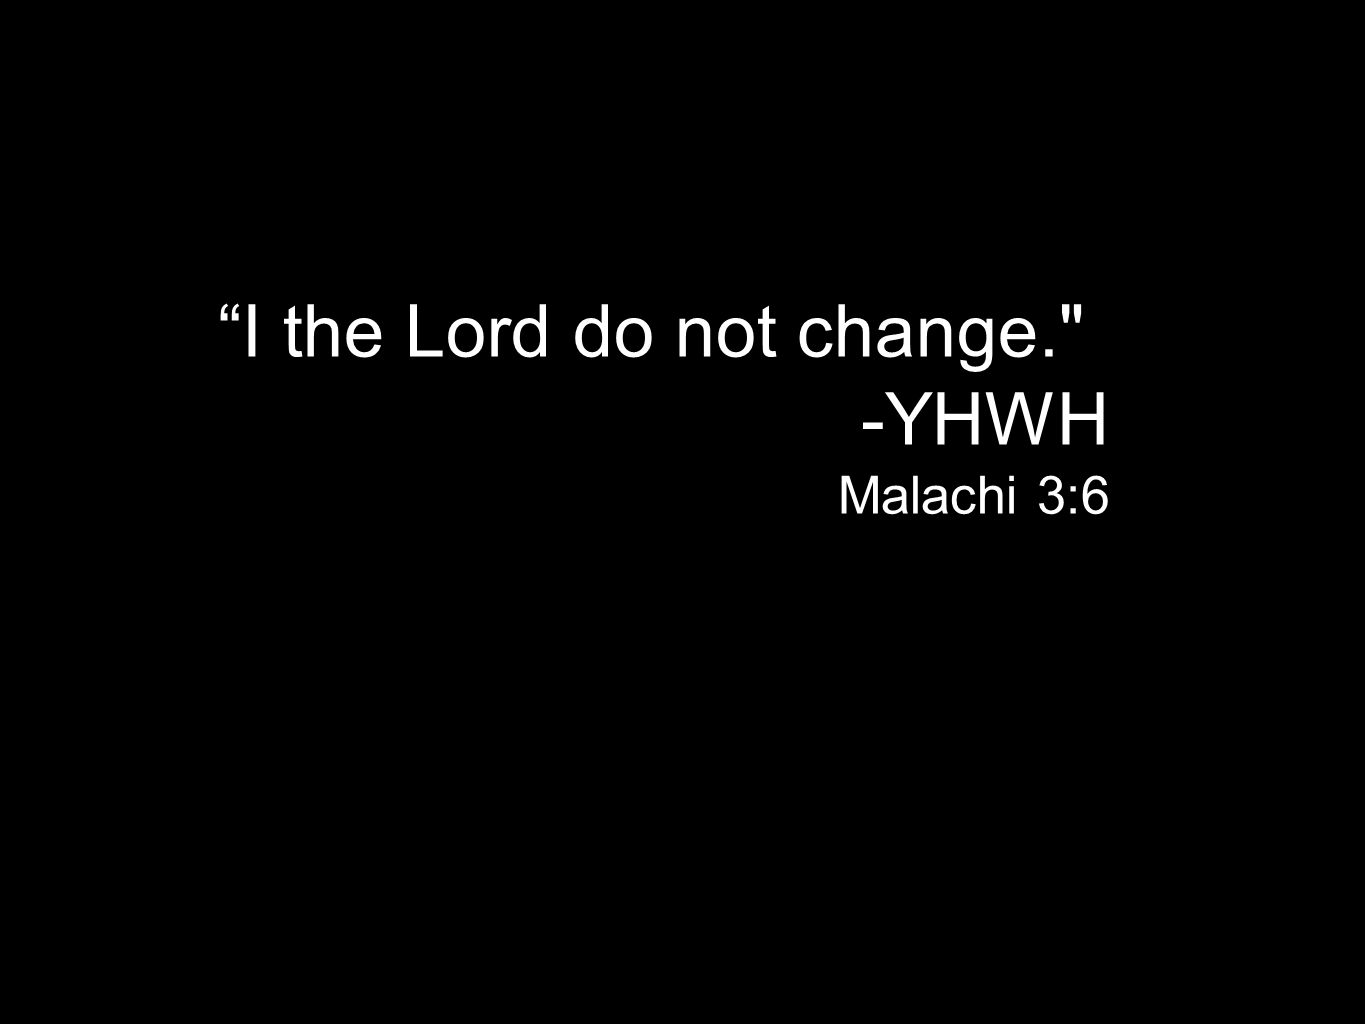 I the Lord do not change. -YHWH Malachi 3:6